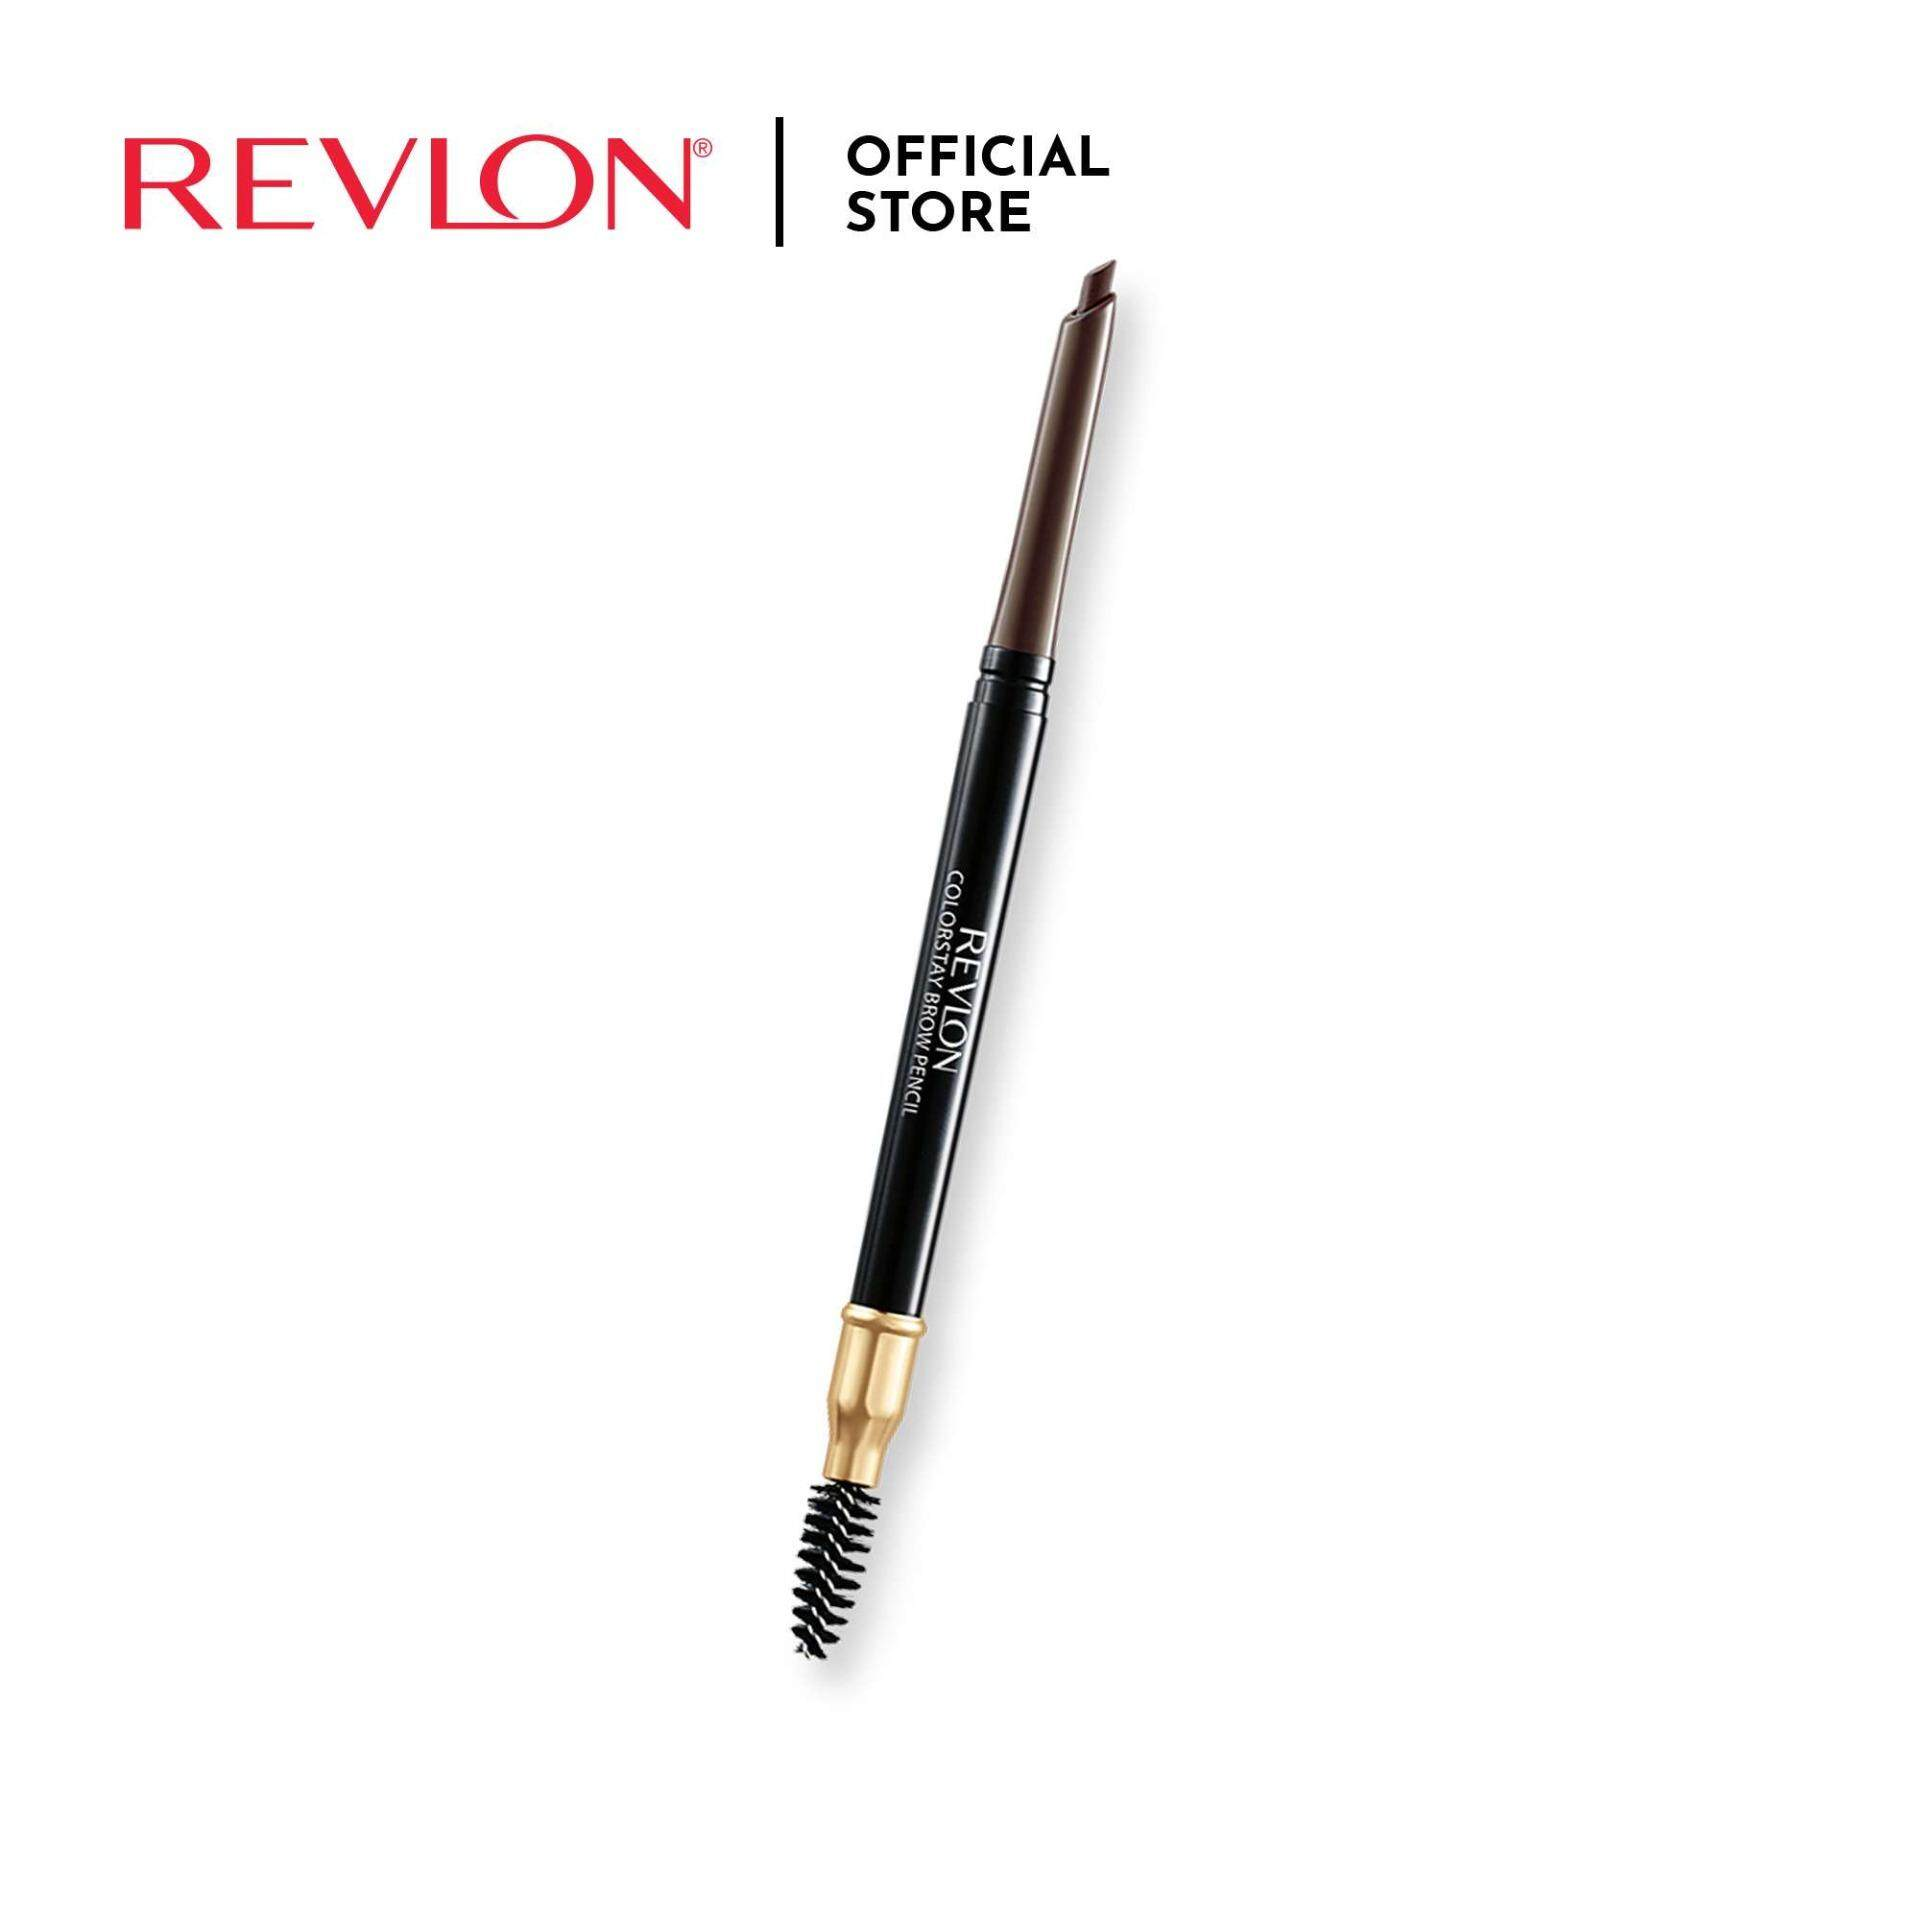 Revlon Colorstay Brow Pencil -Dark Brown